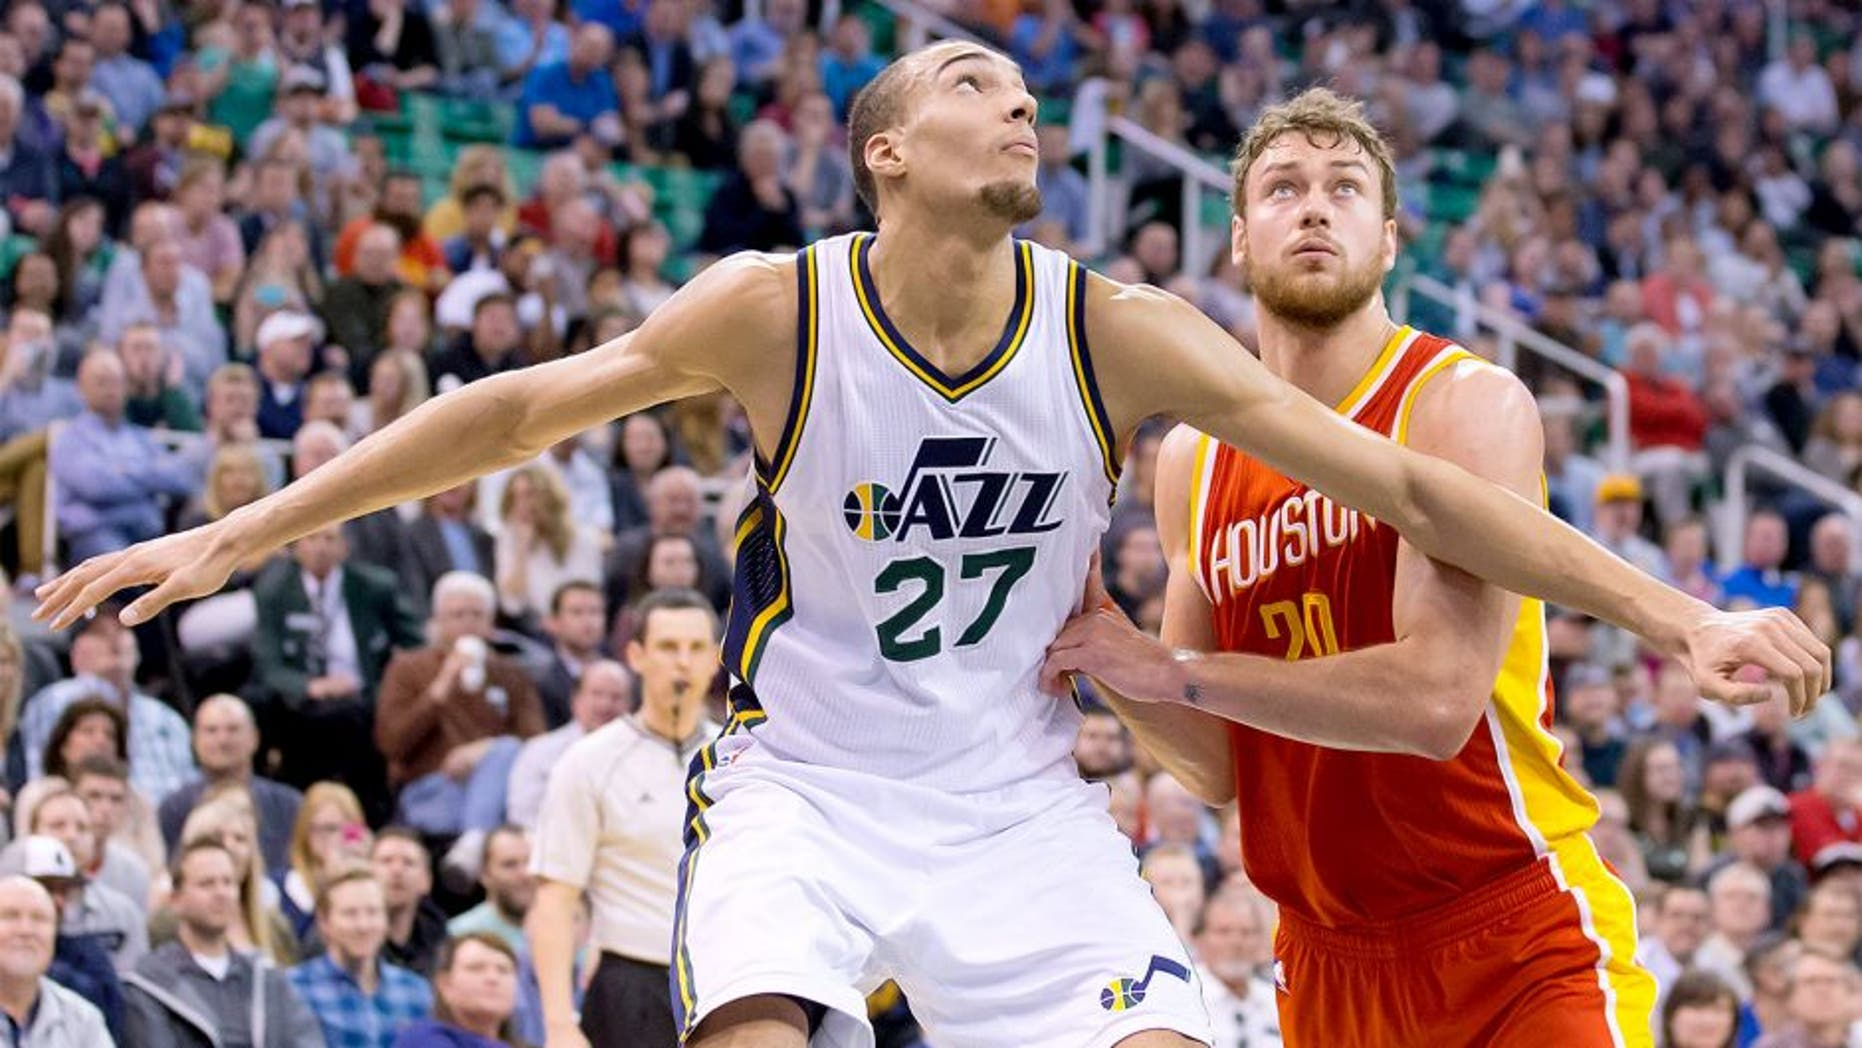 Mar 12, 2015; Salt Lake City, UT, USA; Utah Jazz center Rudy Gobert (27) boxes out Houston Rockets forward Donatas Motiejunas (20) during the first half at EnergySolutions Arena. Mandatory Credit: Russ Isabella-USA TODAY Sports